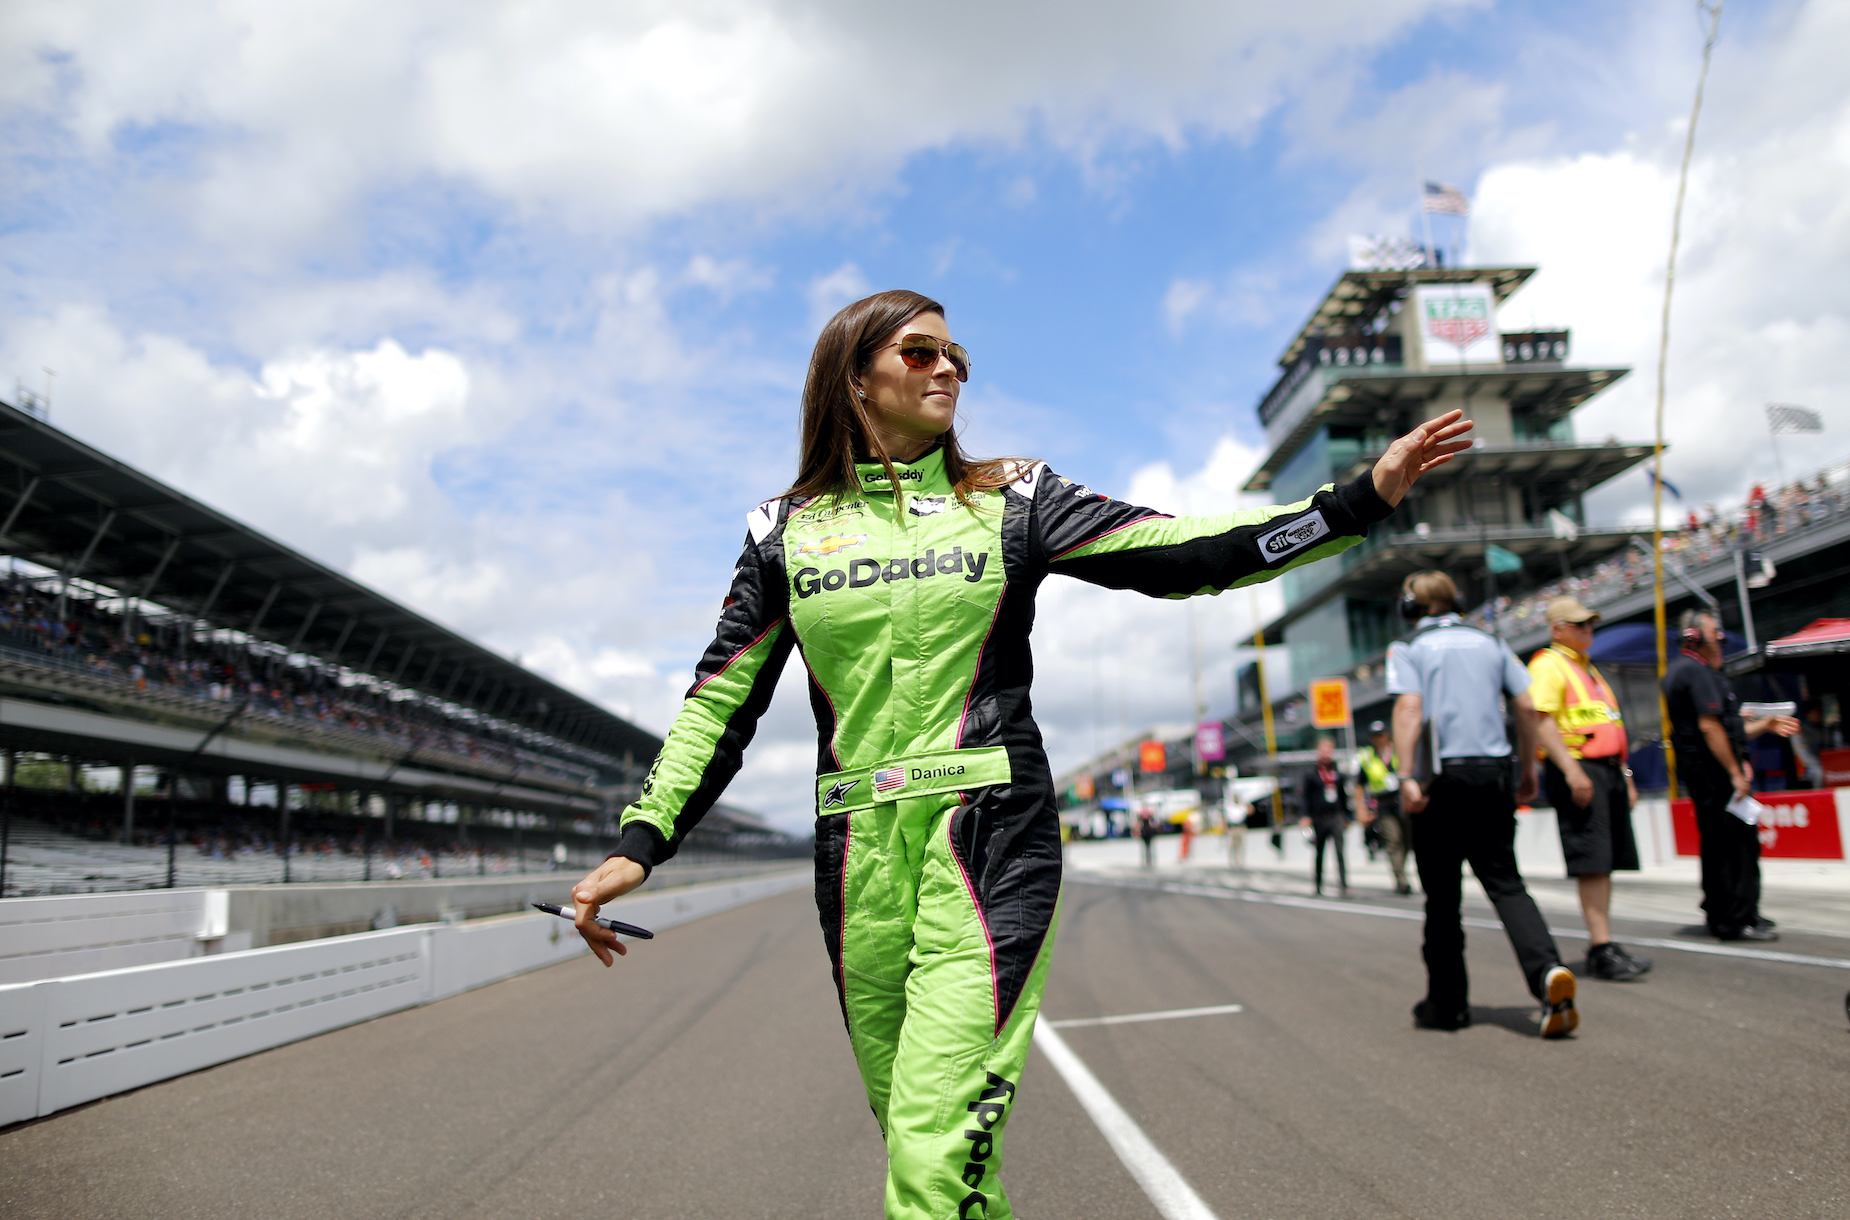 Danica Patrick at the Indianapolis Motor Speedway in 2018.